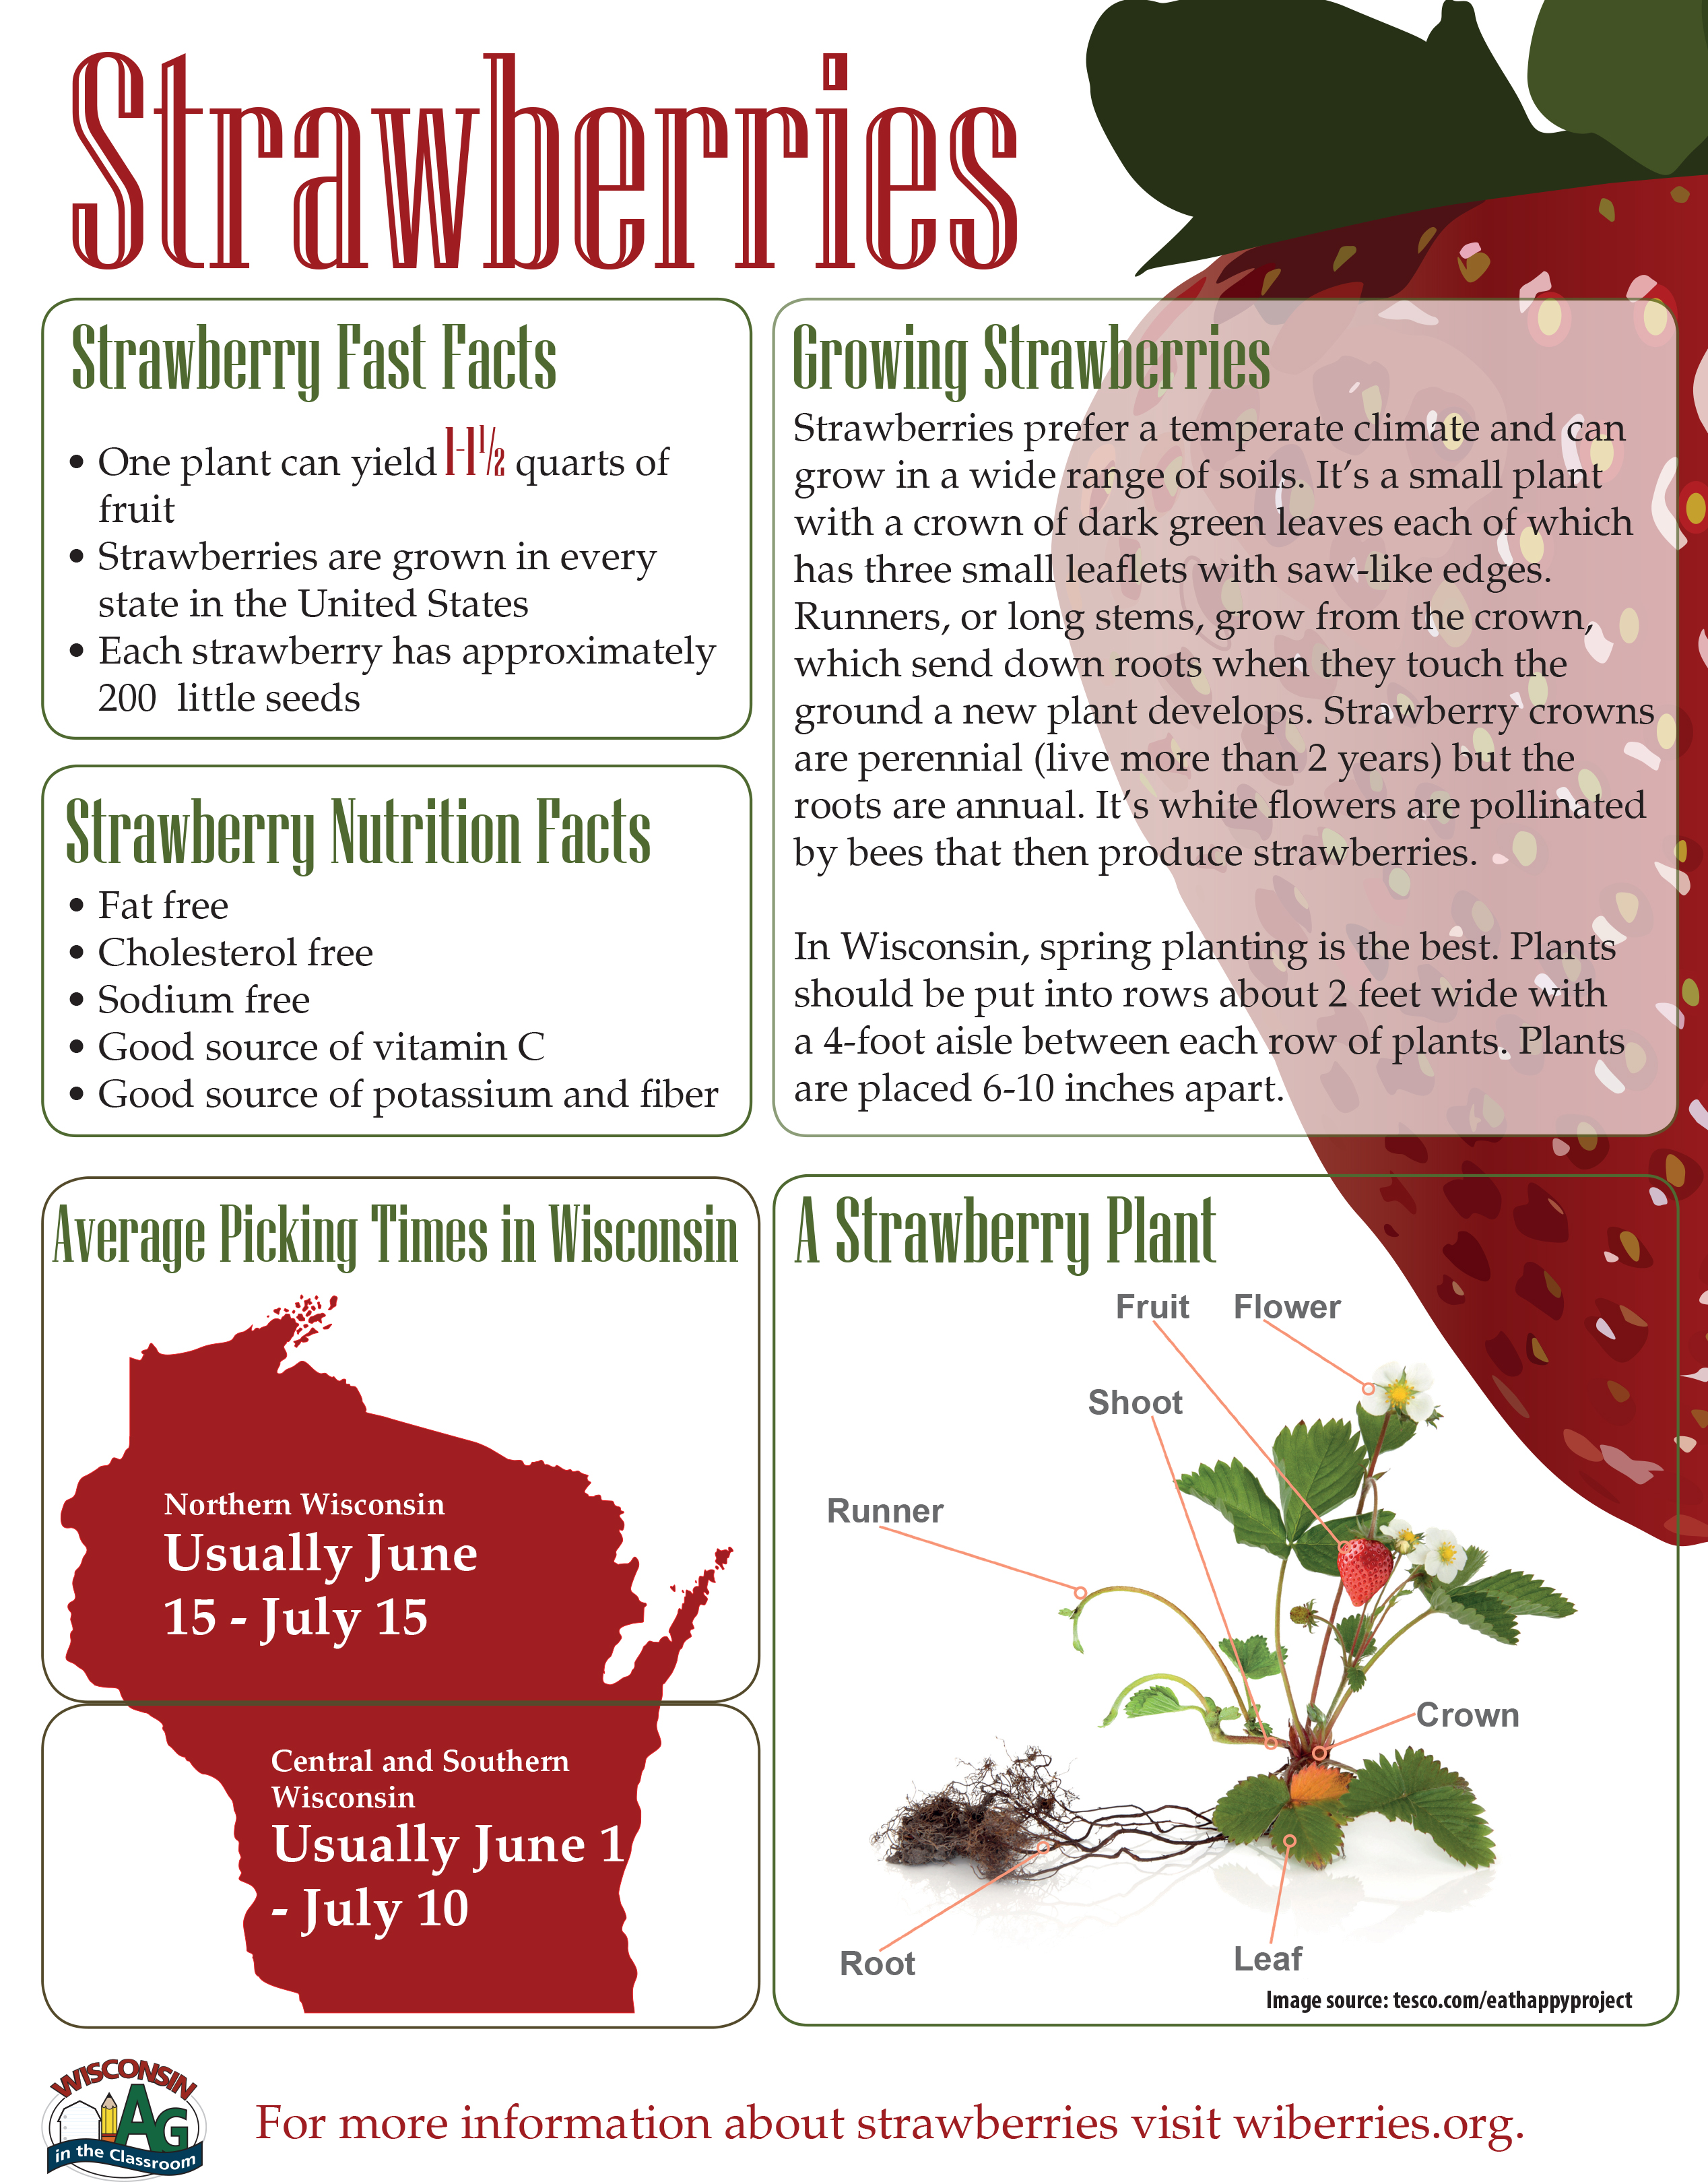 Strawberries Fact Sheet